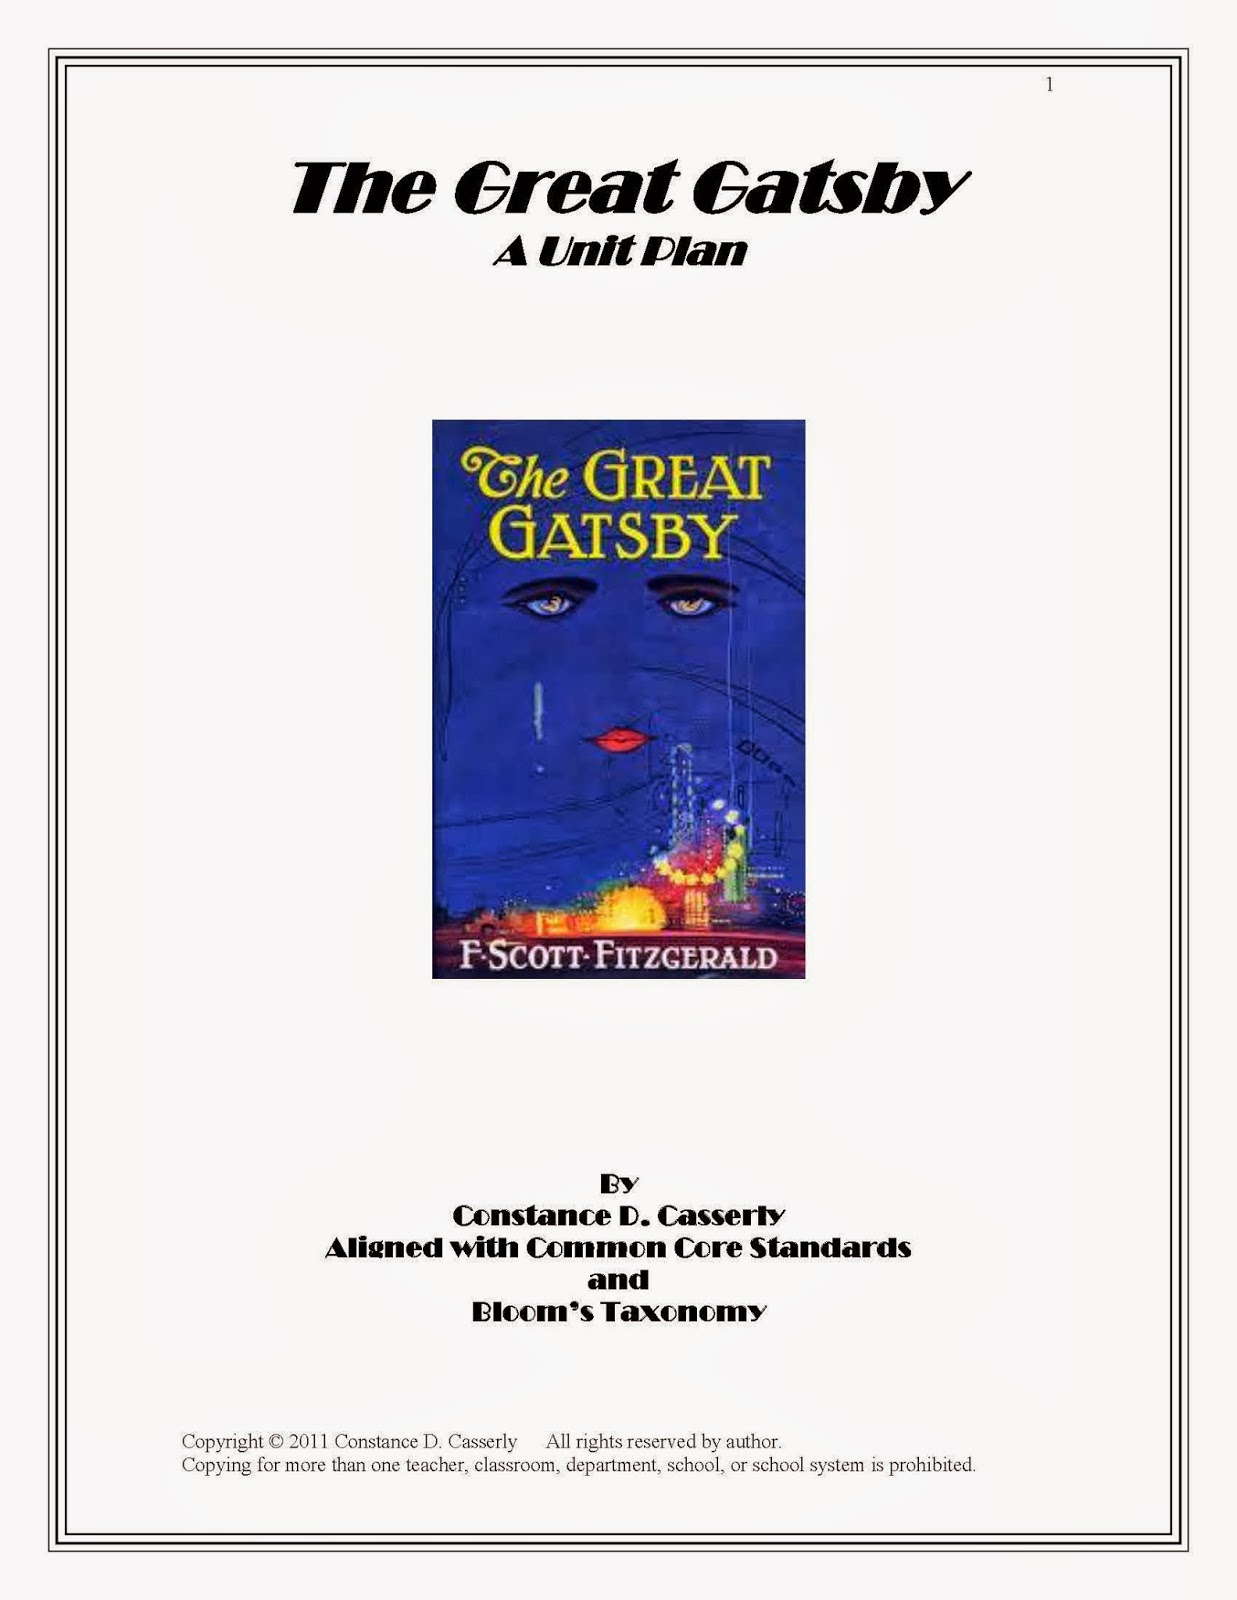 ap european history scientific revolution essay questions a guide essay questions for the great gatsby